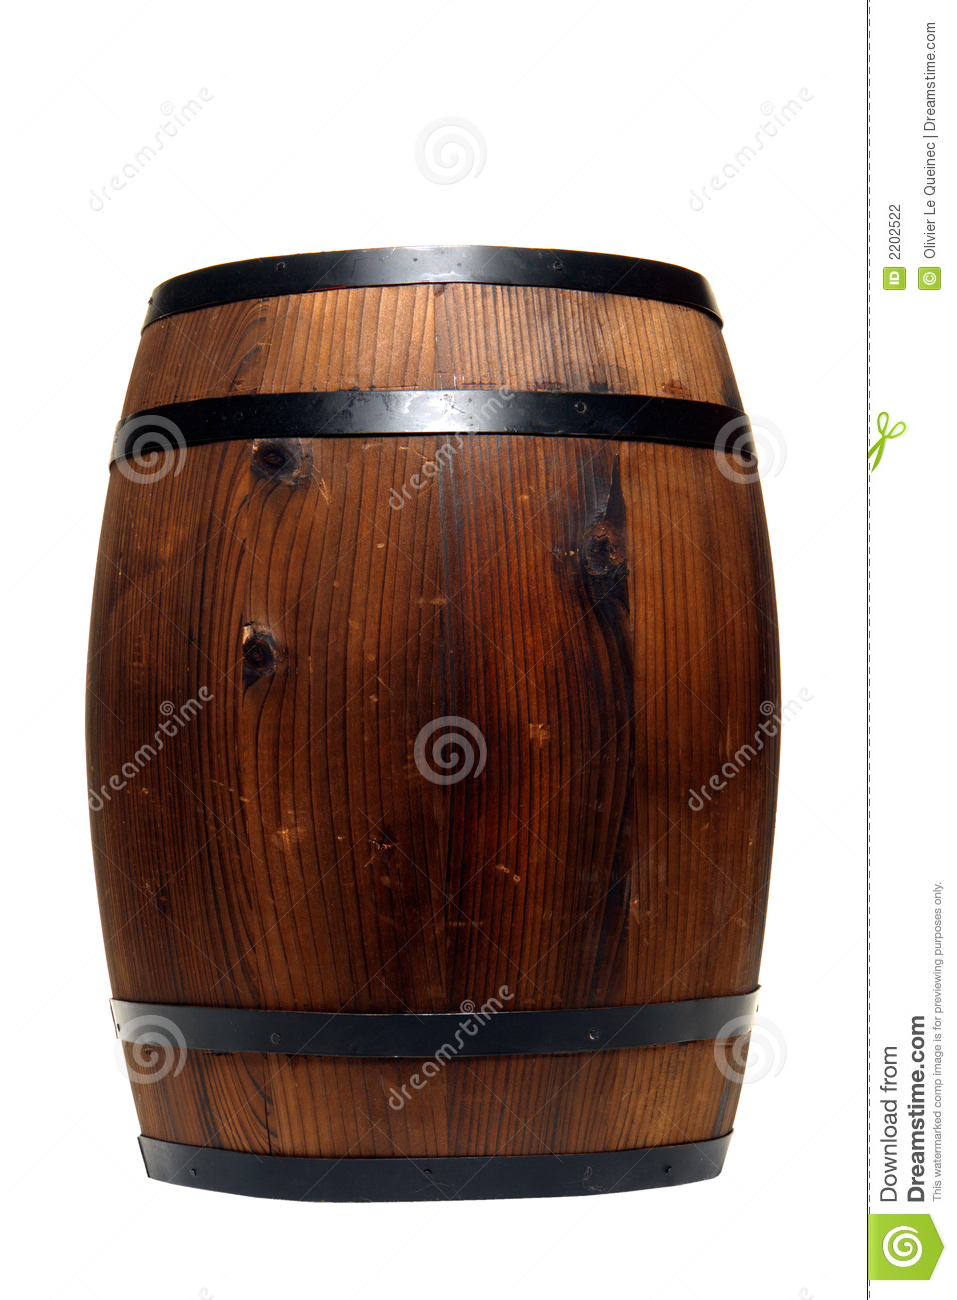 Whisky cask clipart - Clipground